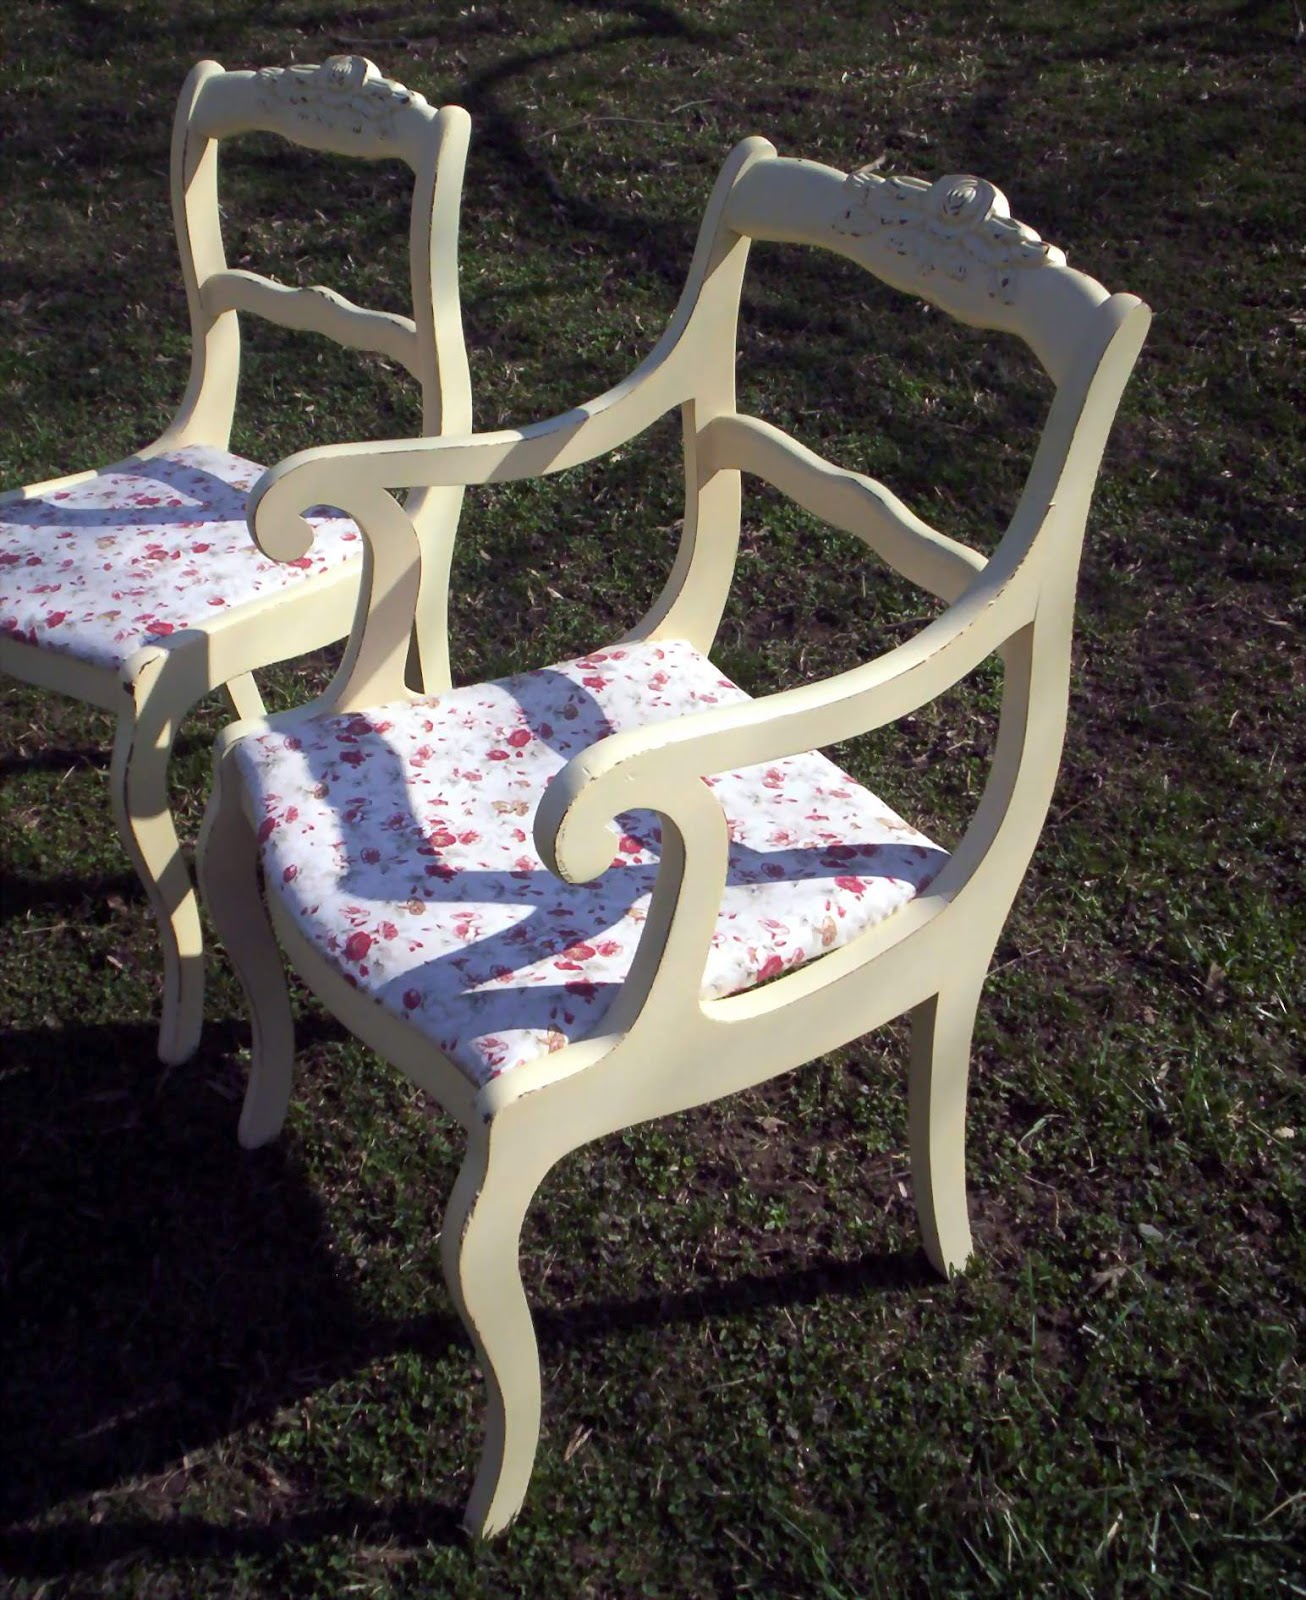 My Painted Stuff: The Duncan Phyfe Chairs